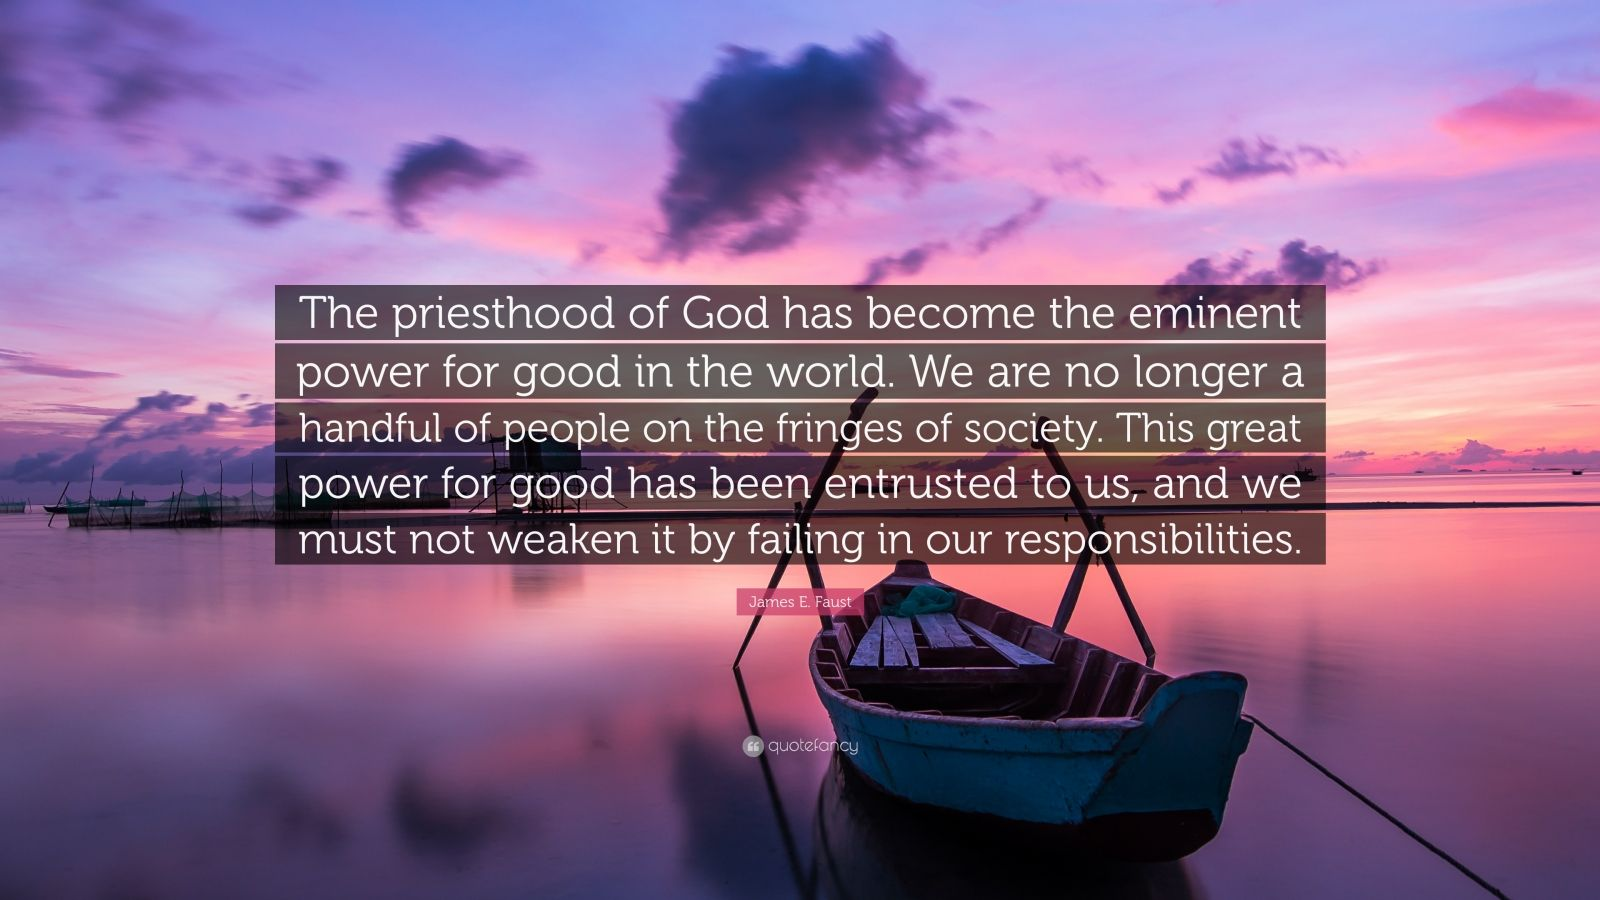 "James E. Faust Quote: ""The priesthood of God has become the eminent power for good in the world. We are no longer a handful of people on the fringes of society. This great power for good has been entrusted to us, and we must not weaken it by failing in our responsibilities."""